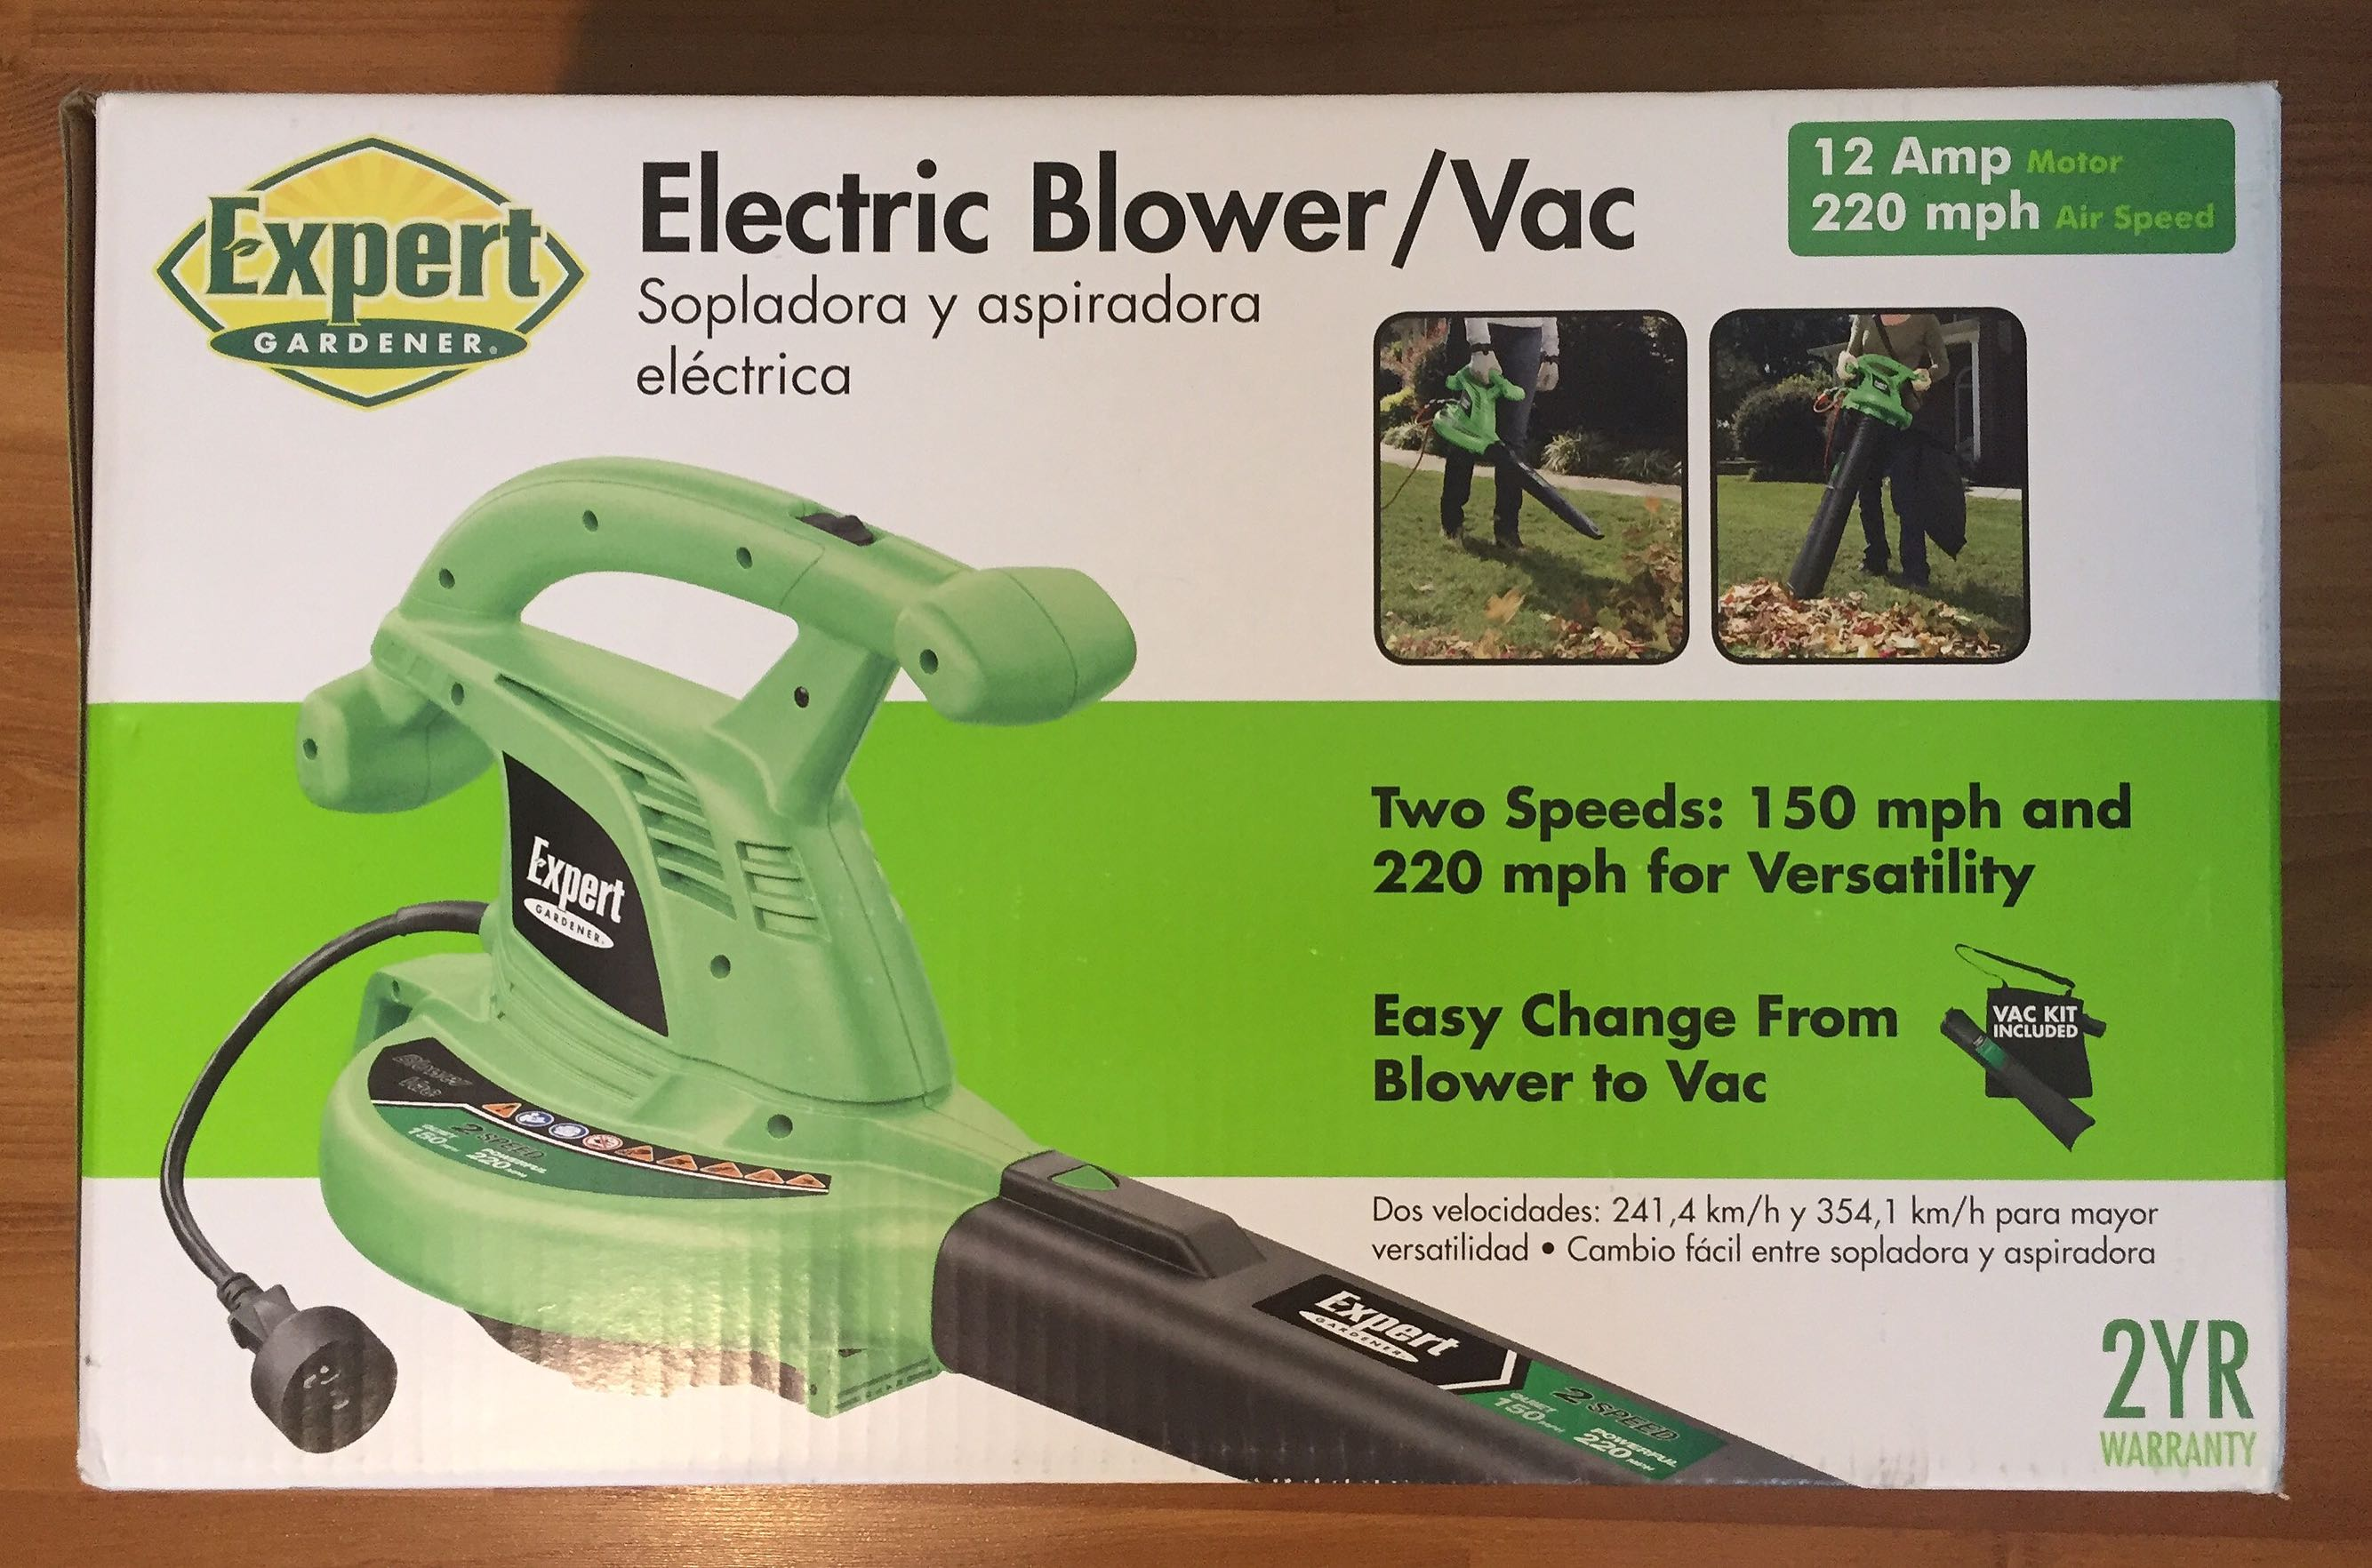 New Electric Blower/Vac 12 Amp Motor 220 Mph